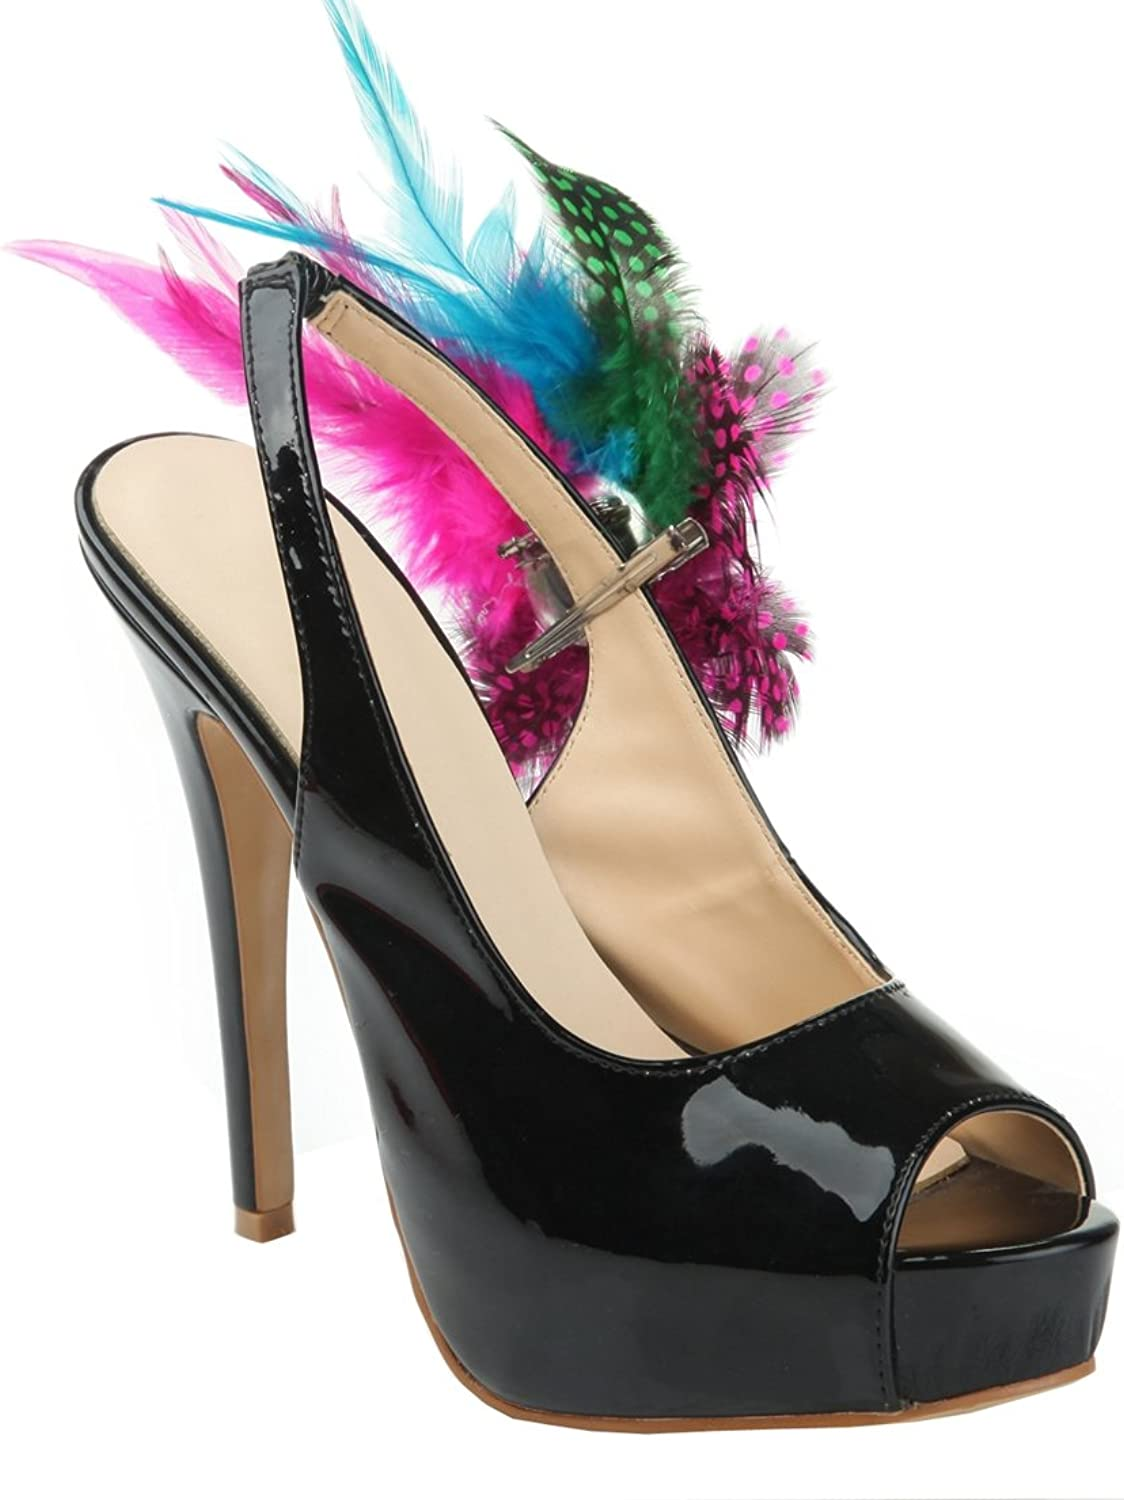 TDA Women's Slingback colorful Feathers Platform Patent Leather Evening Party Dress Stiletto shoes